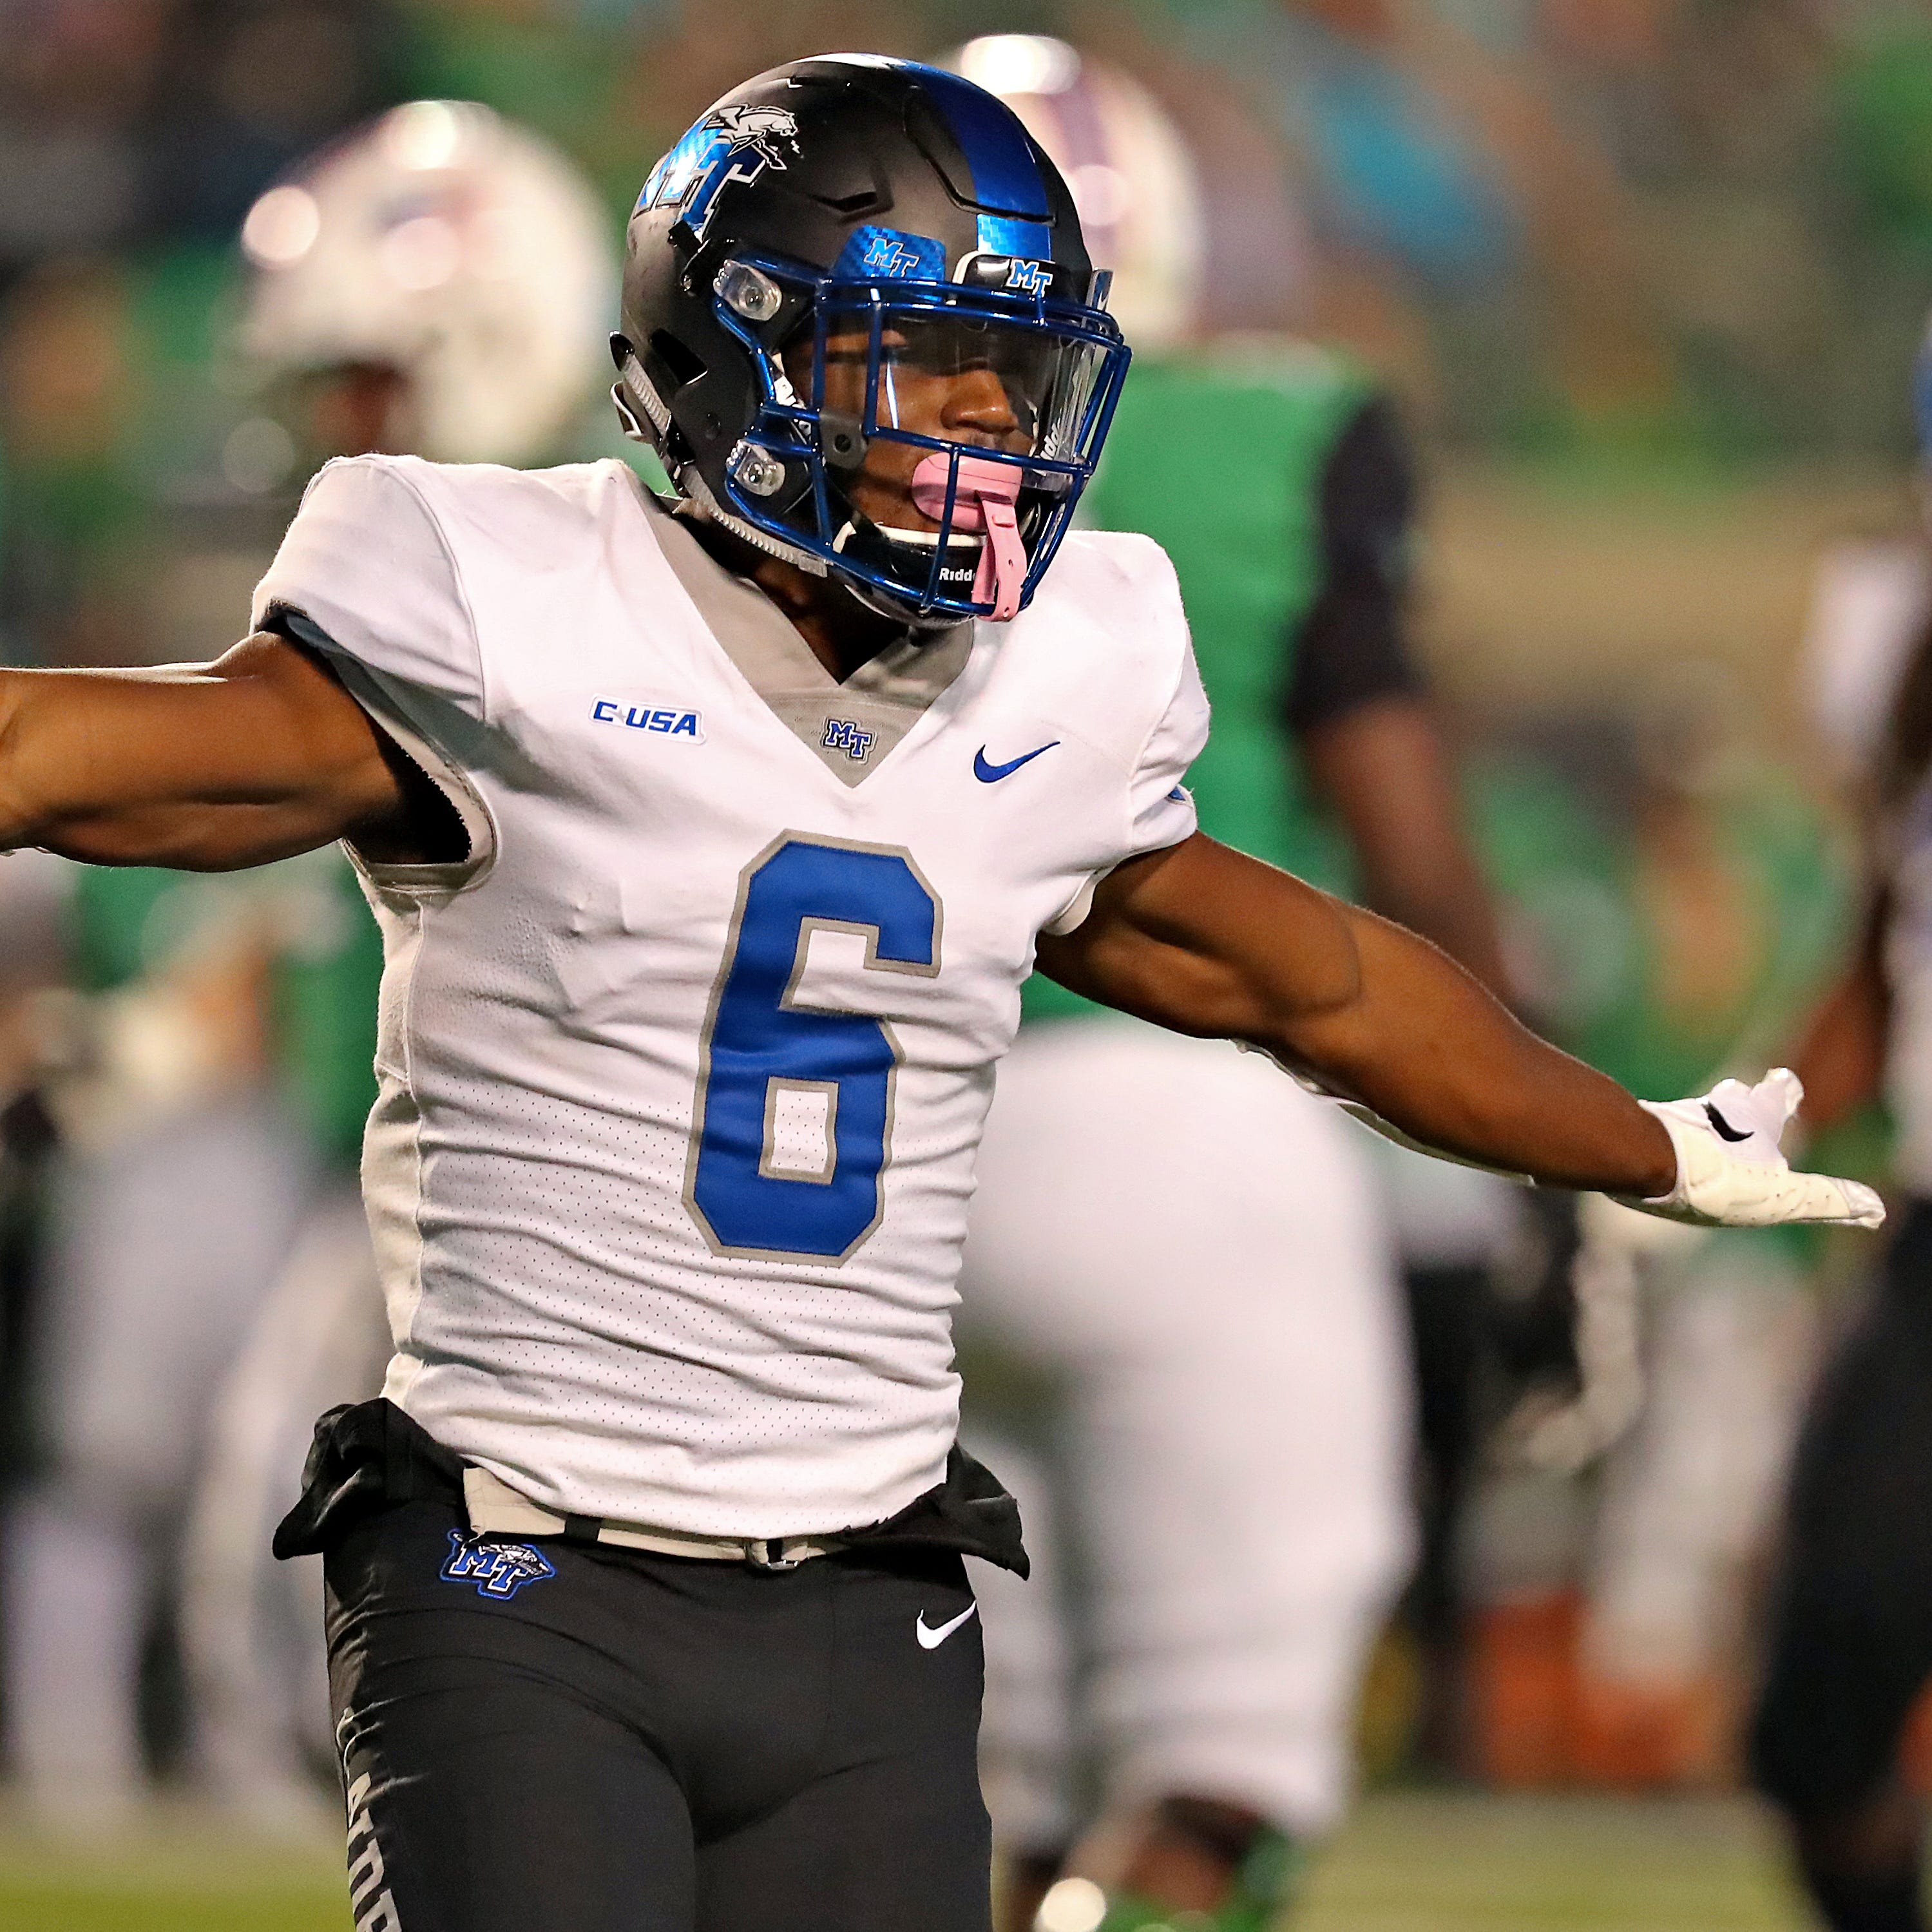 MTSU goes on the road to face Florida International